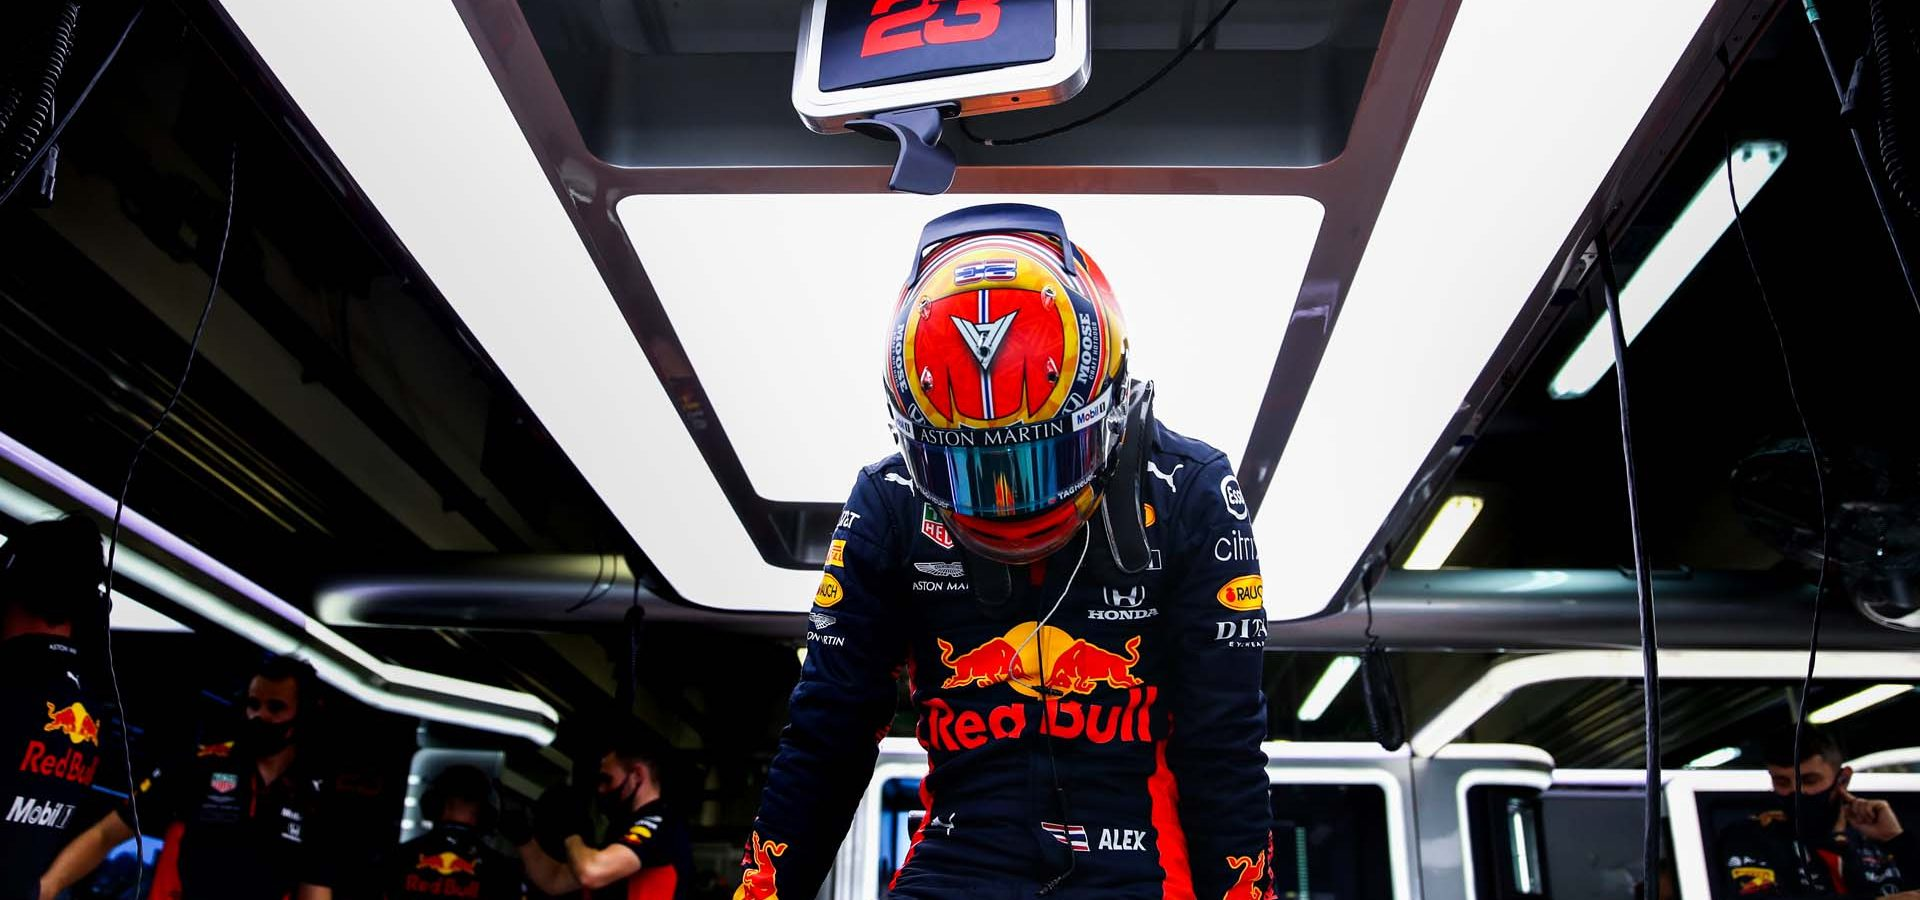 SOCHI, RUSSIA - SEPTEMBER 25: Alexander Albon of Thailand and Red Bull Racing prepares to drive in the garage during practice ahead of the F1 Grand Prix of Russia at Sochi Autodrom on September 25, 2020 in Sochi, Russia. (Photo by Mark Thompson/Getty Images)